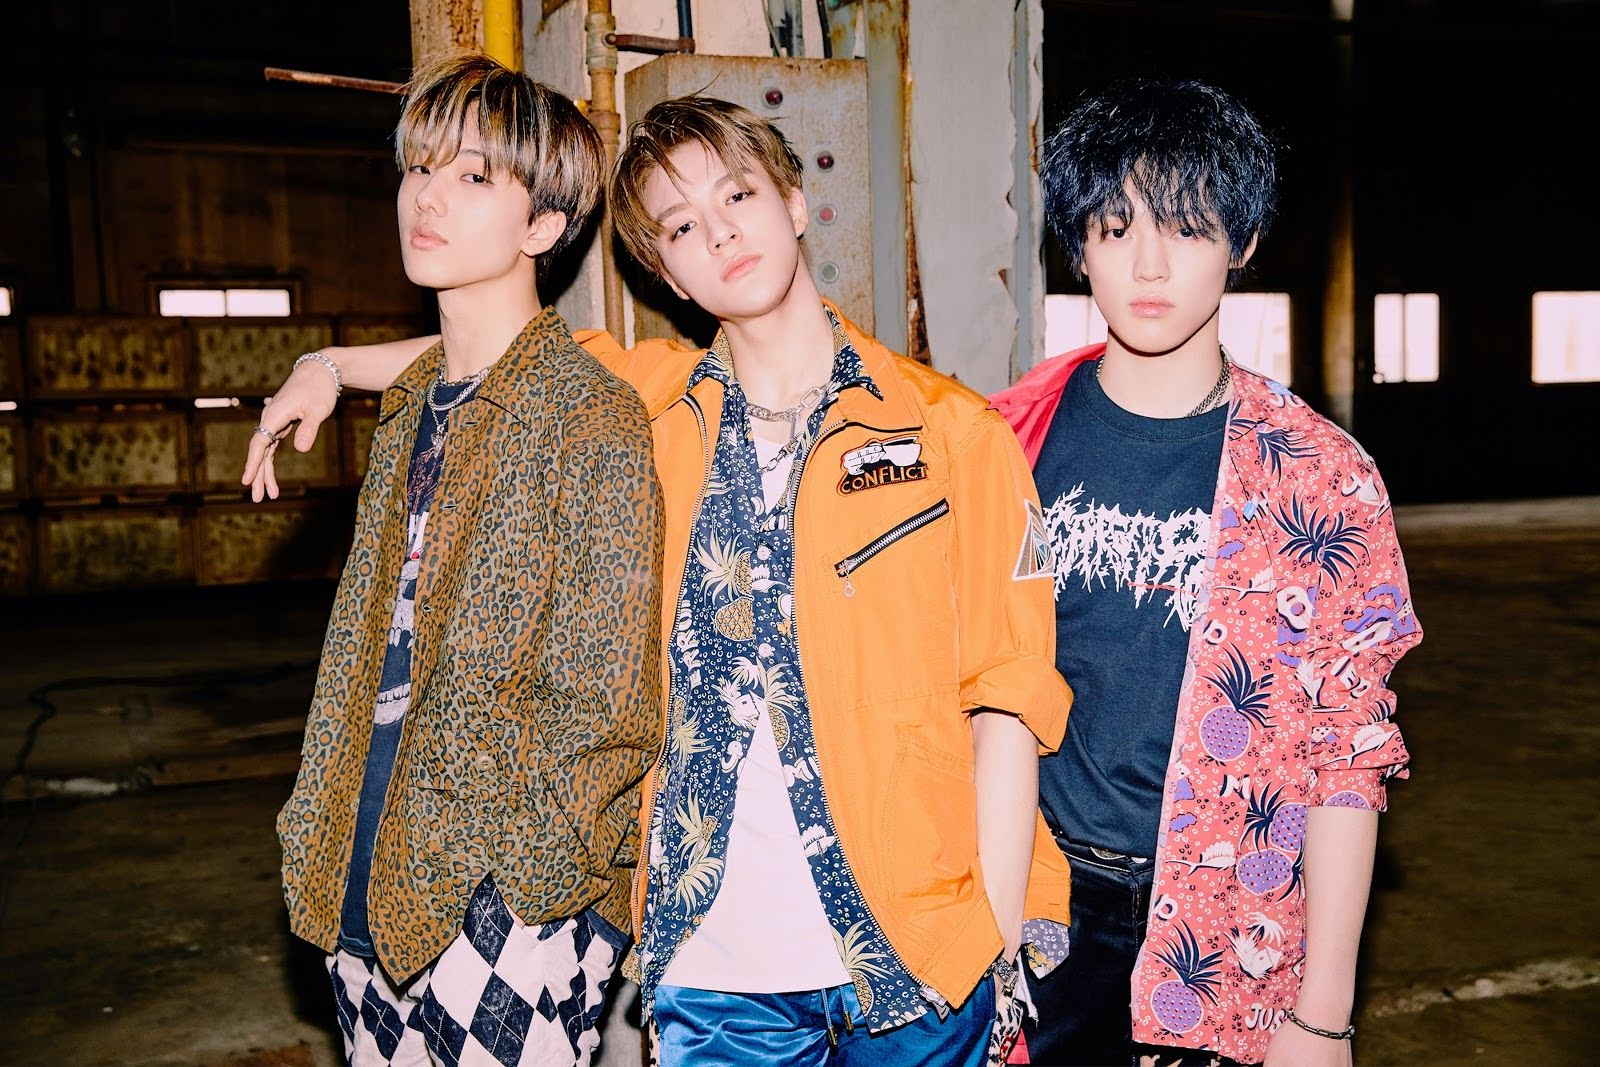 nct dream jisung jeno chenle @NCTsmtown_DREAM